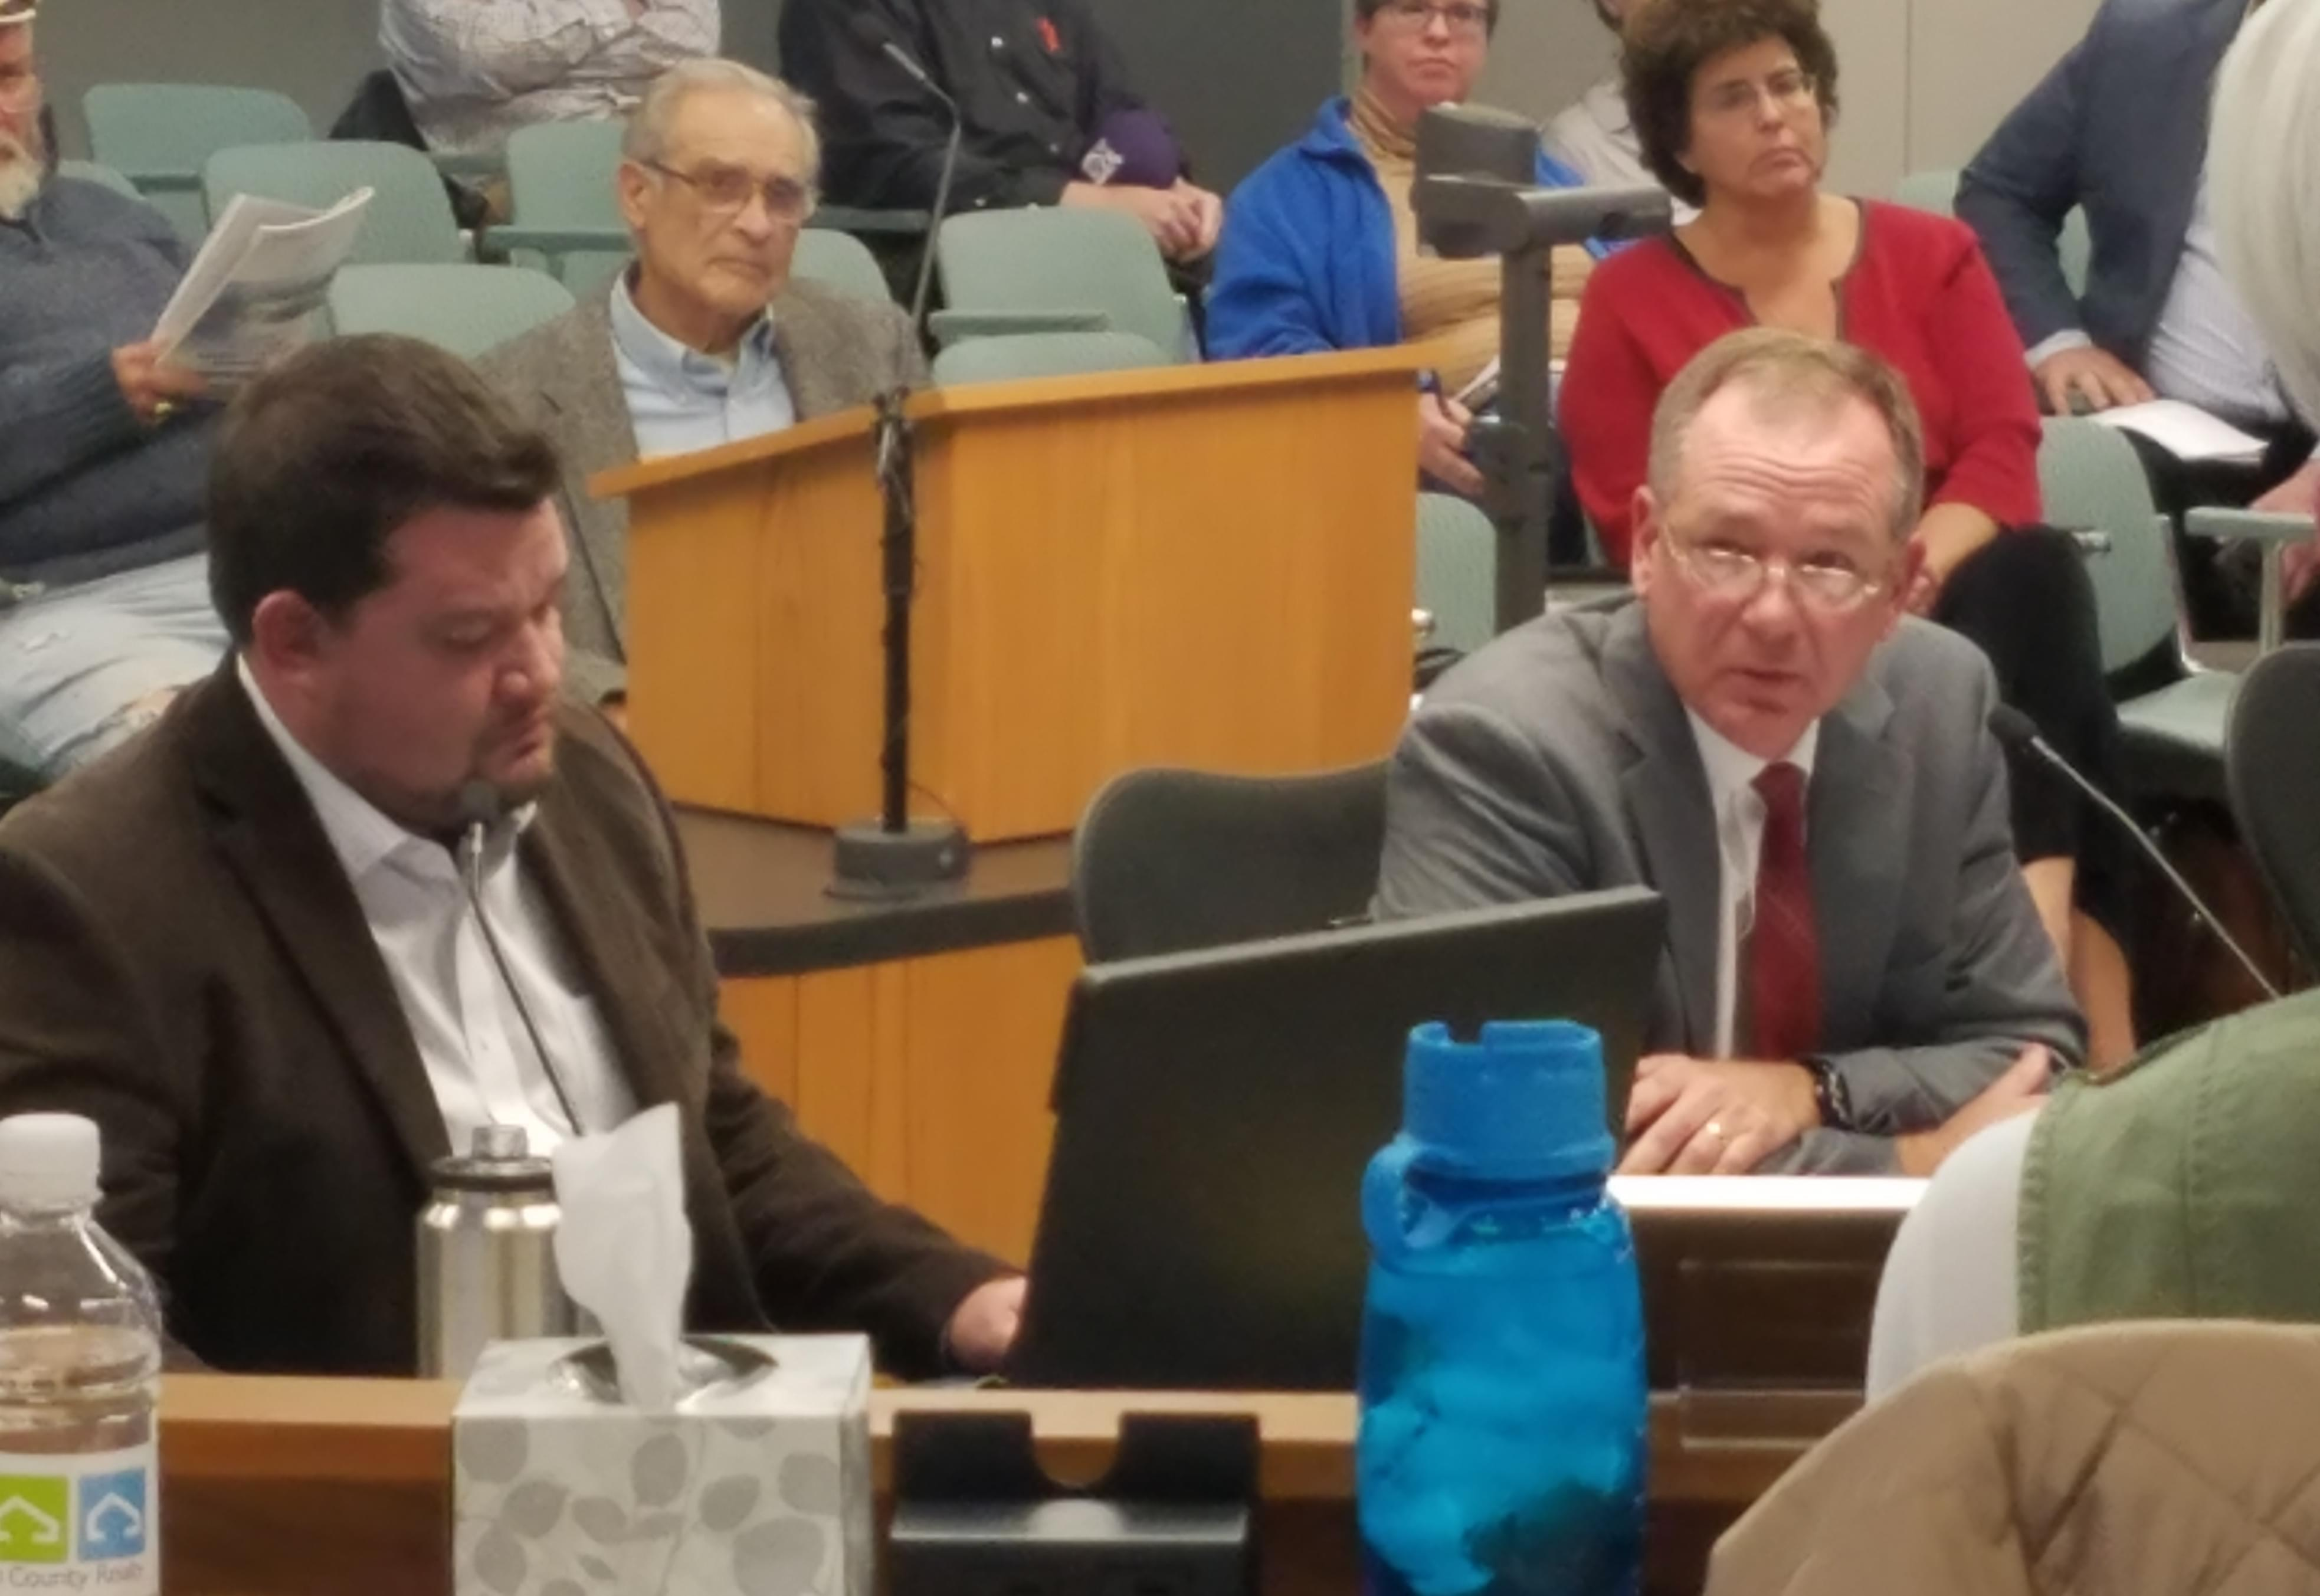 Champaign Unit Four School Board President Chris Kloeppel and attorney Patrick Fitzgerald, testifying before the Champaign Plan Commission.